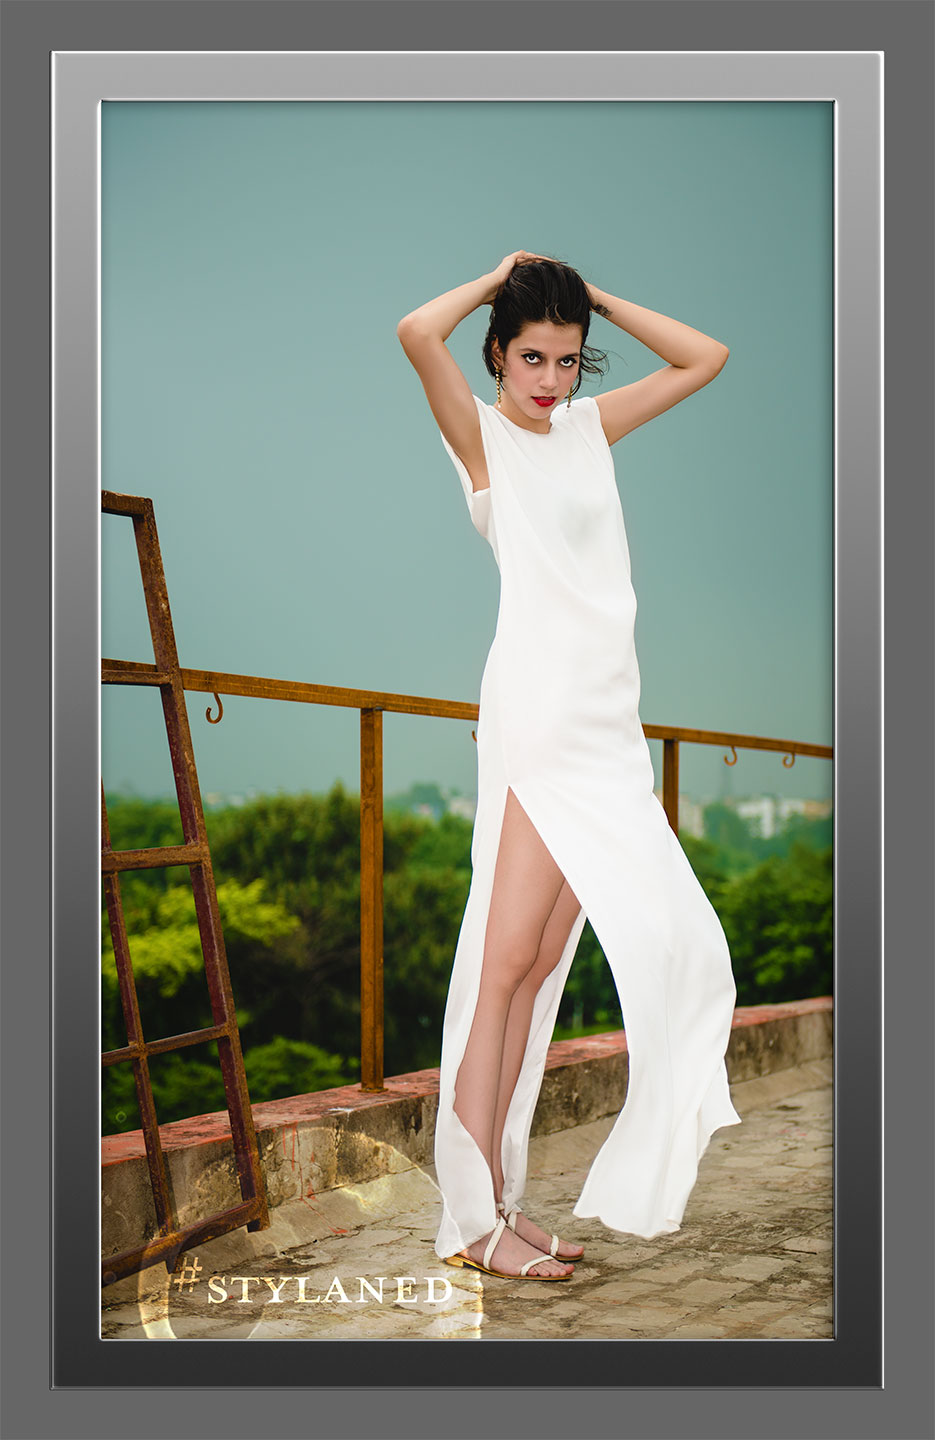 #stylaned Fashion features by photographer Naina Redhu and designer / stylist / blogger Akanksha Redhu for DRVV Official